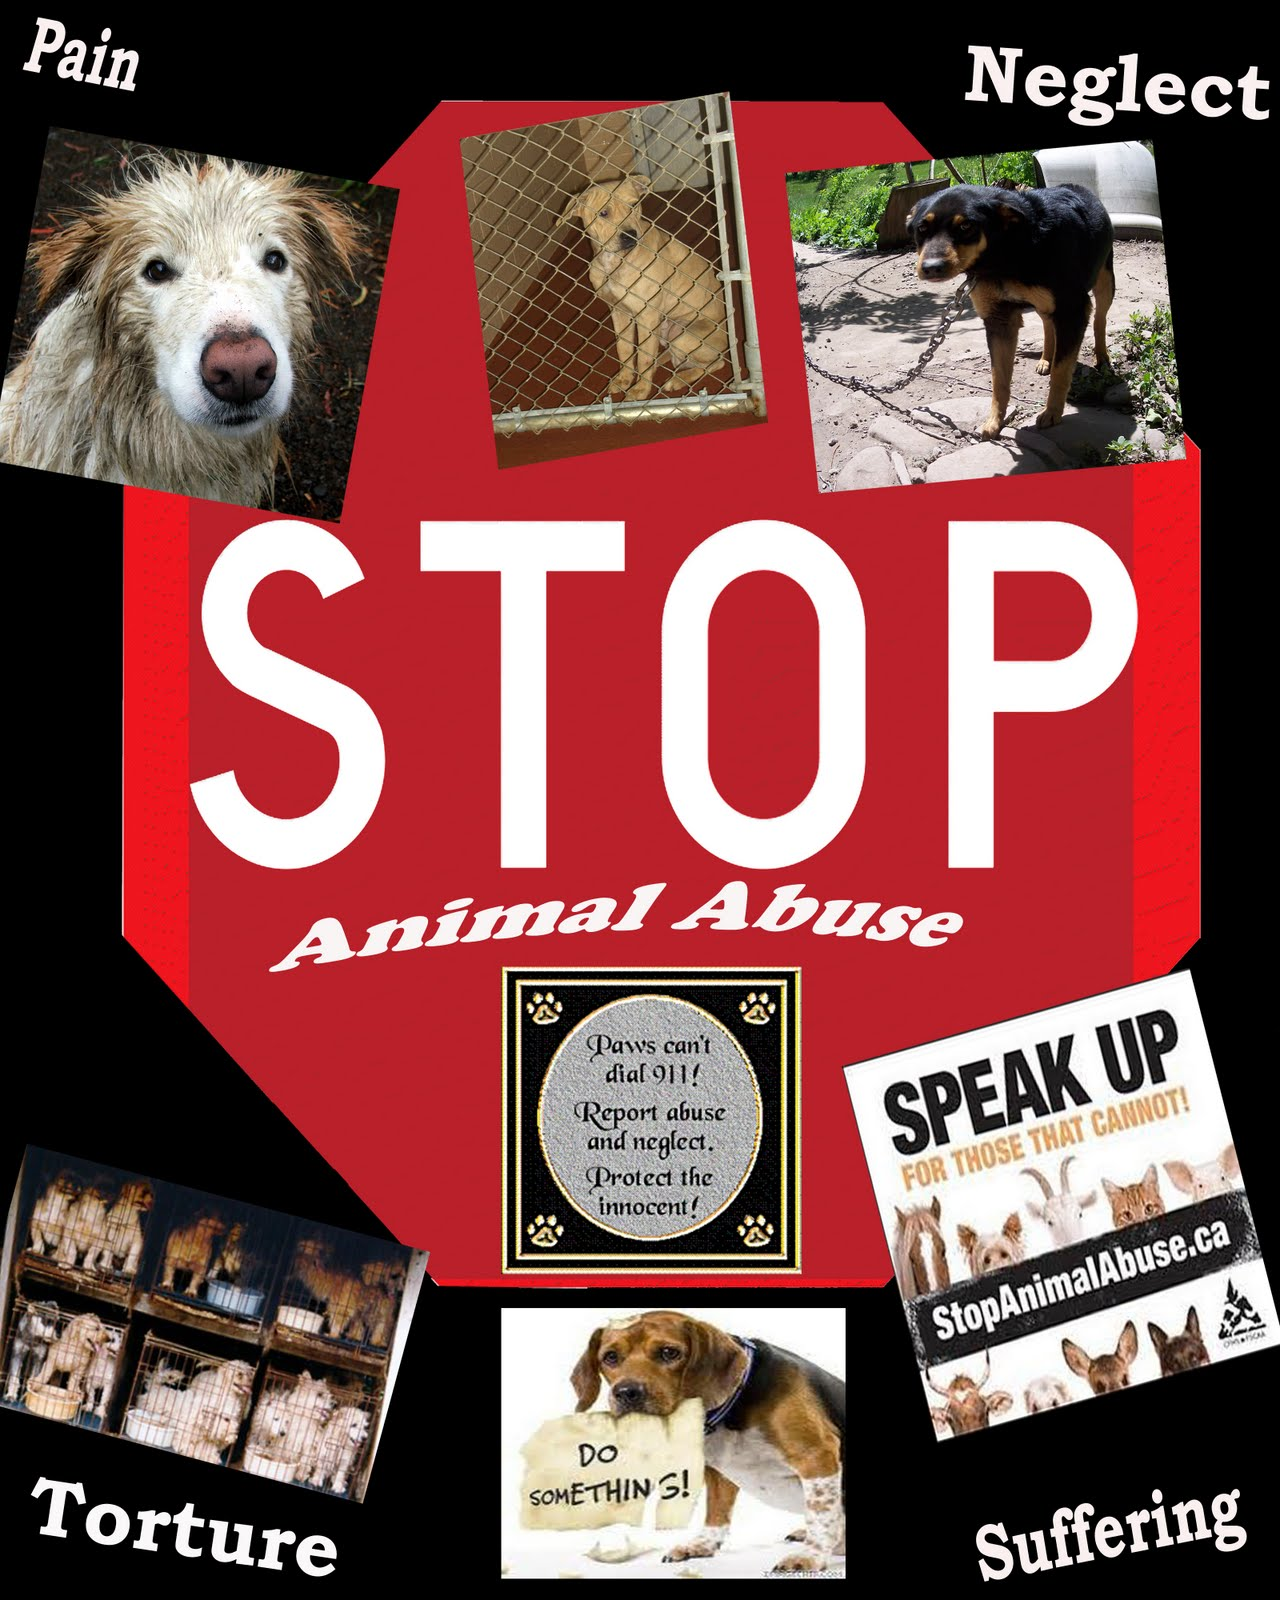 Animal abuse posters - photo#11